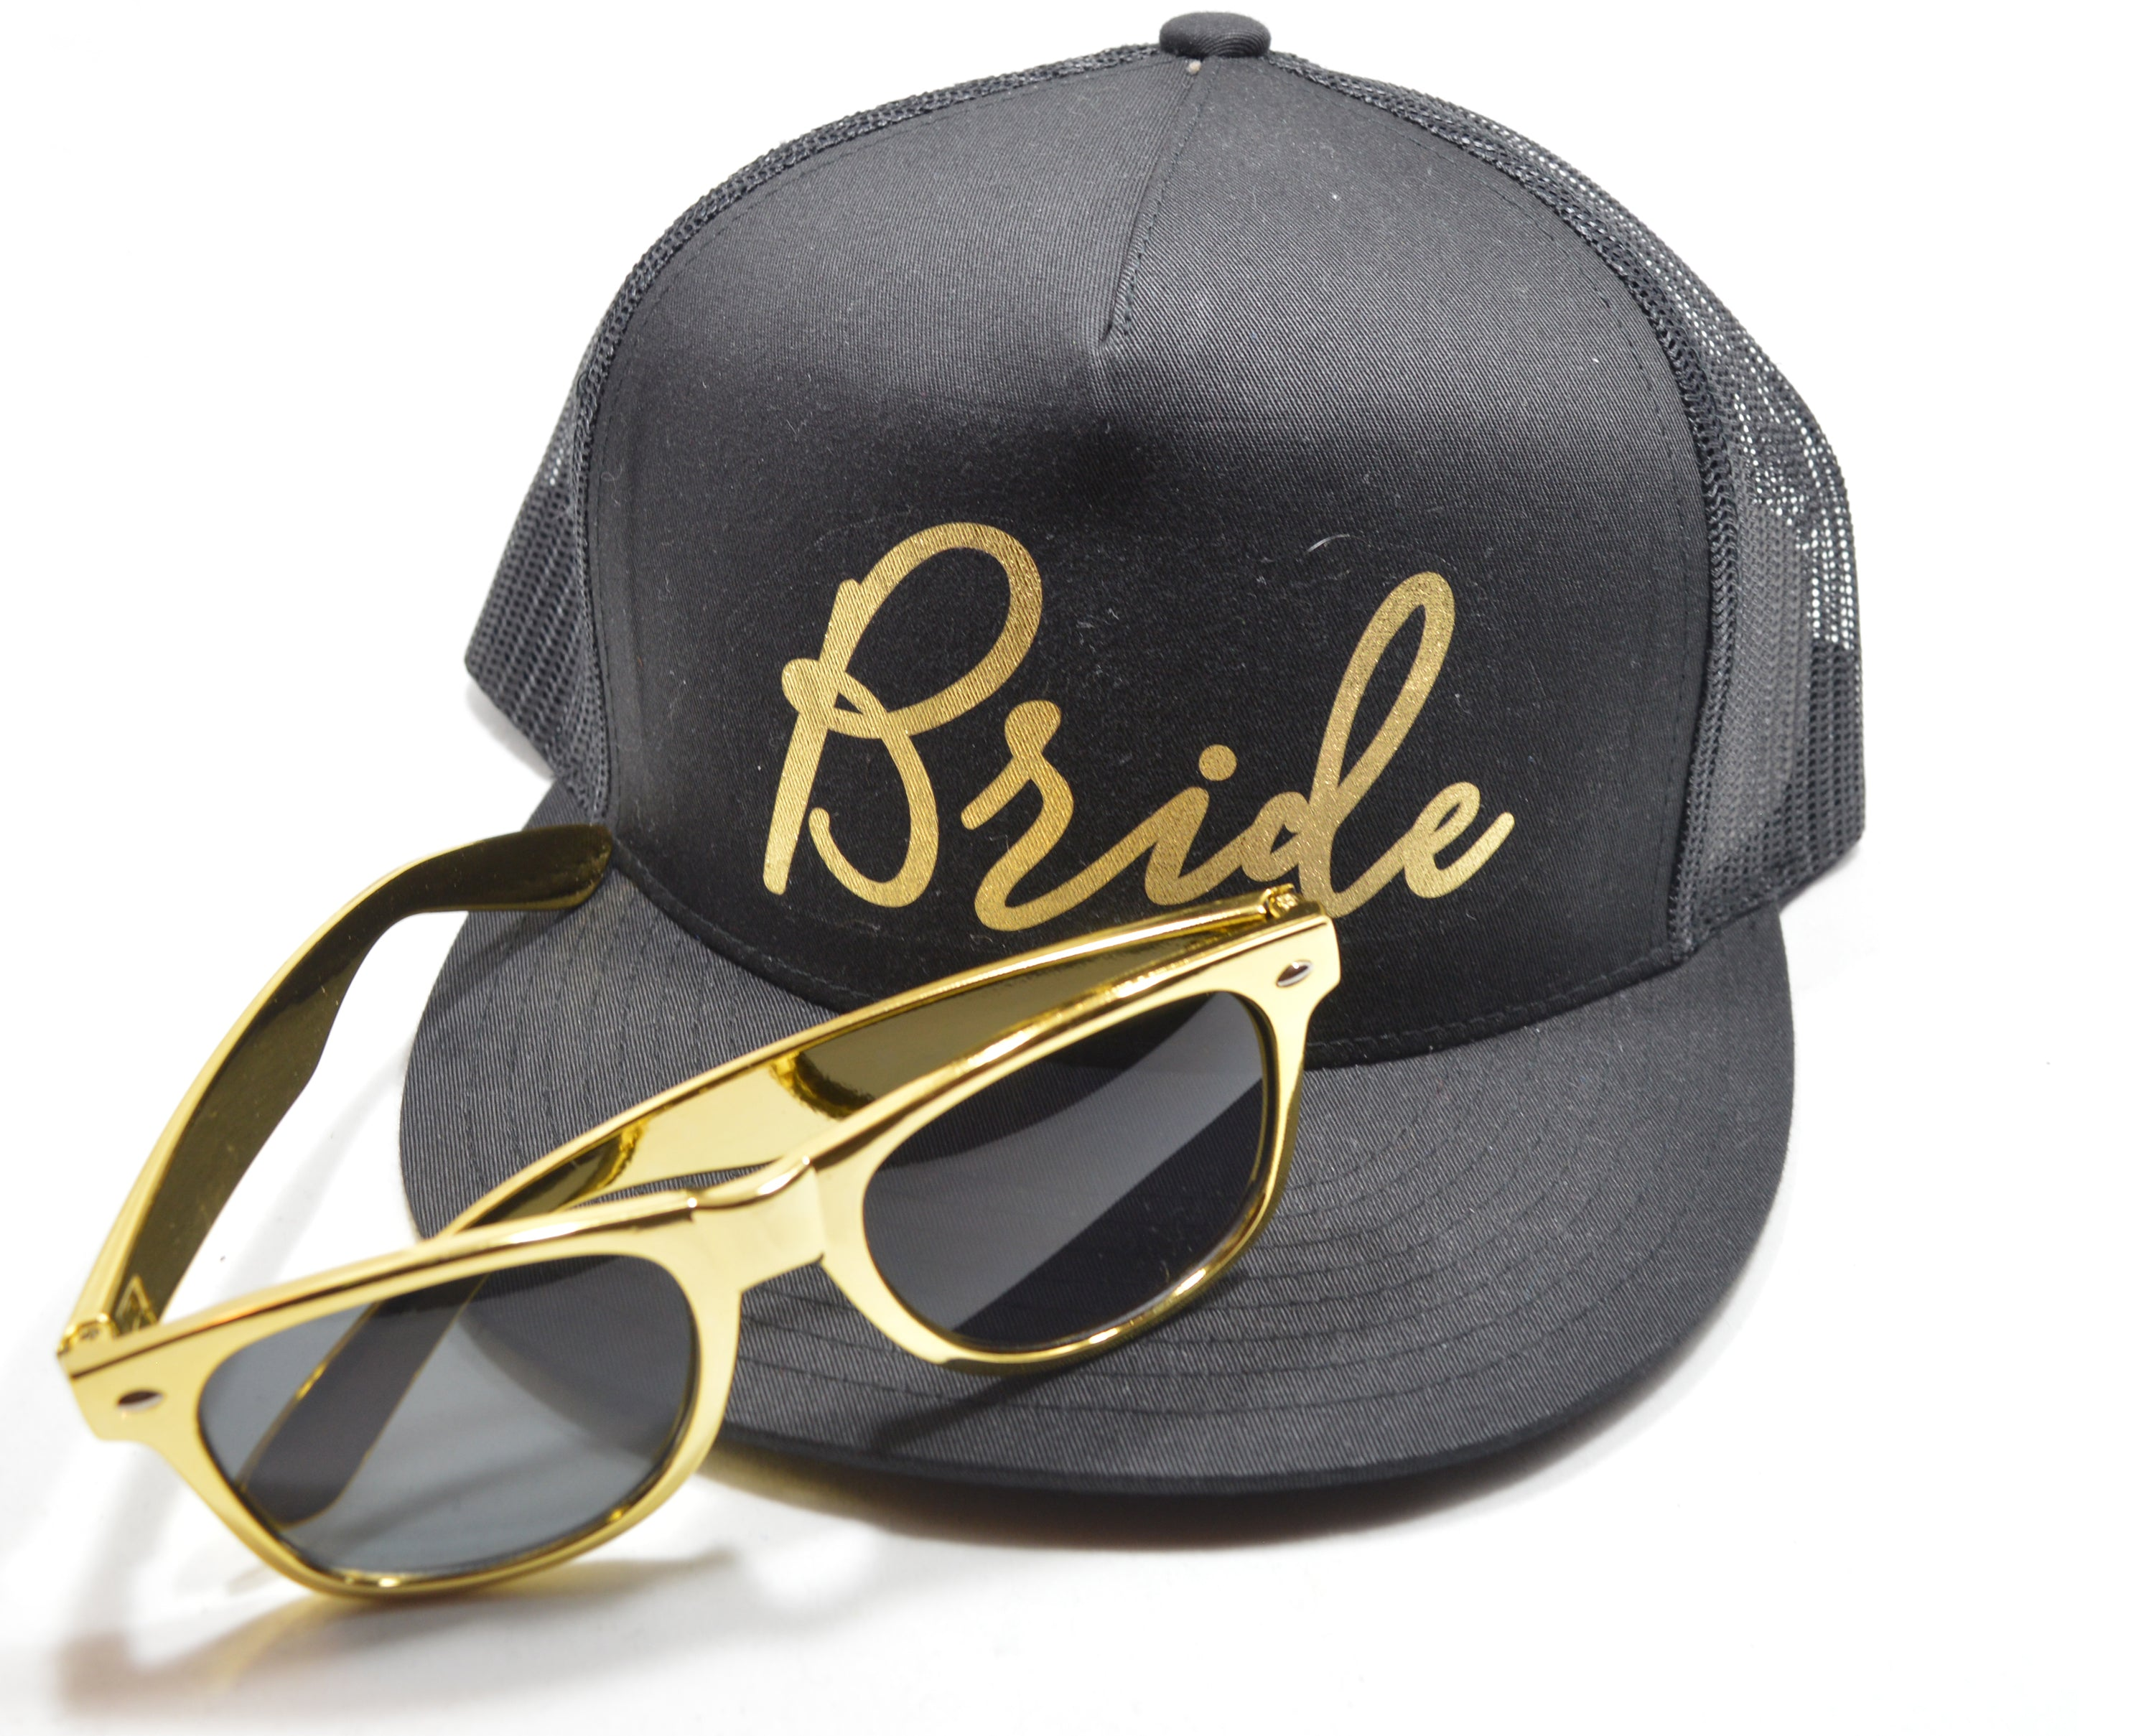 a43c6ffc808 Bridal Party Trucker Hat Gold Foil - Celebrate Chaos